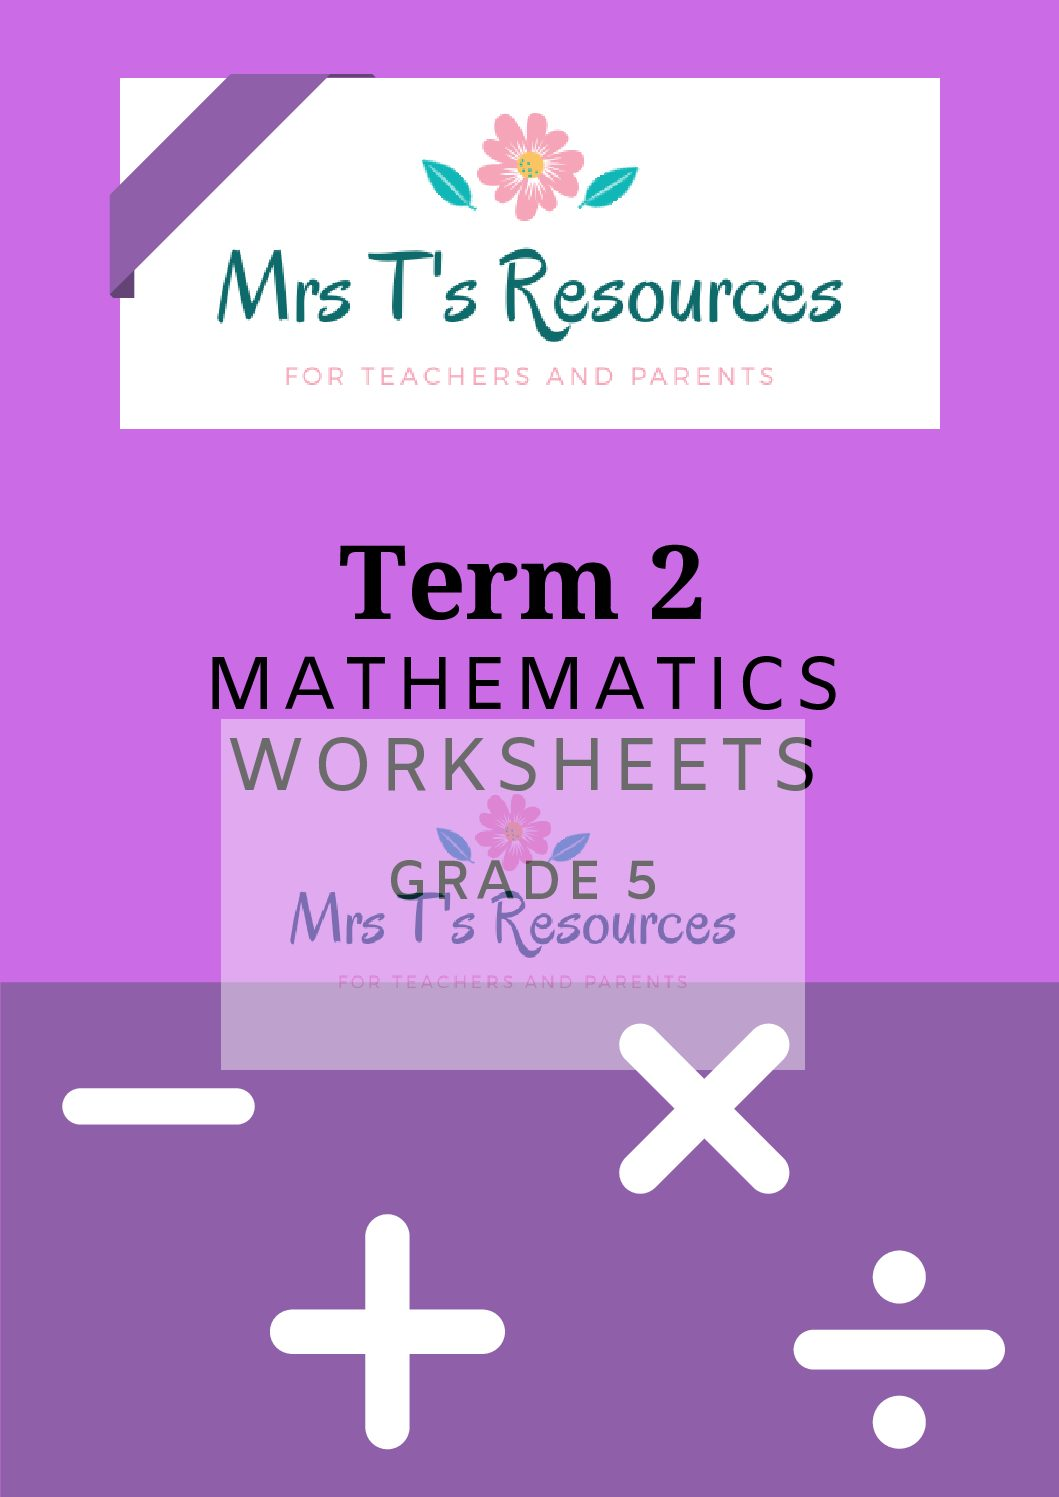 Grade 5 Mathematics Worksheets Term 2